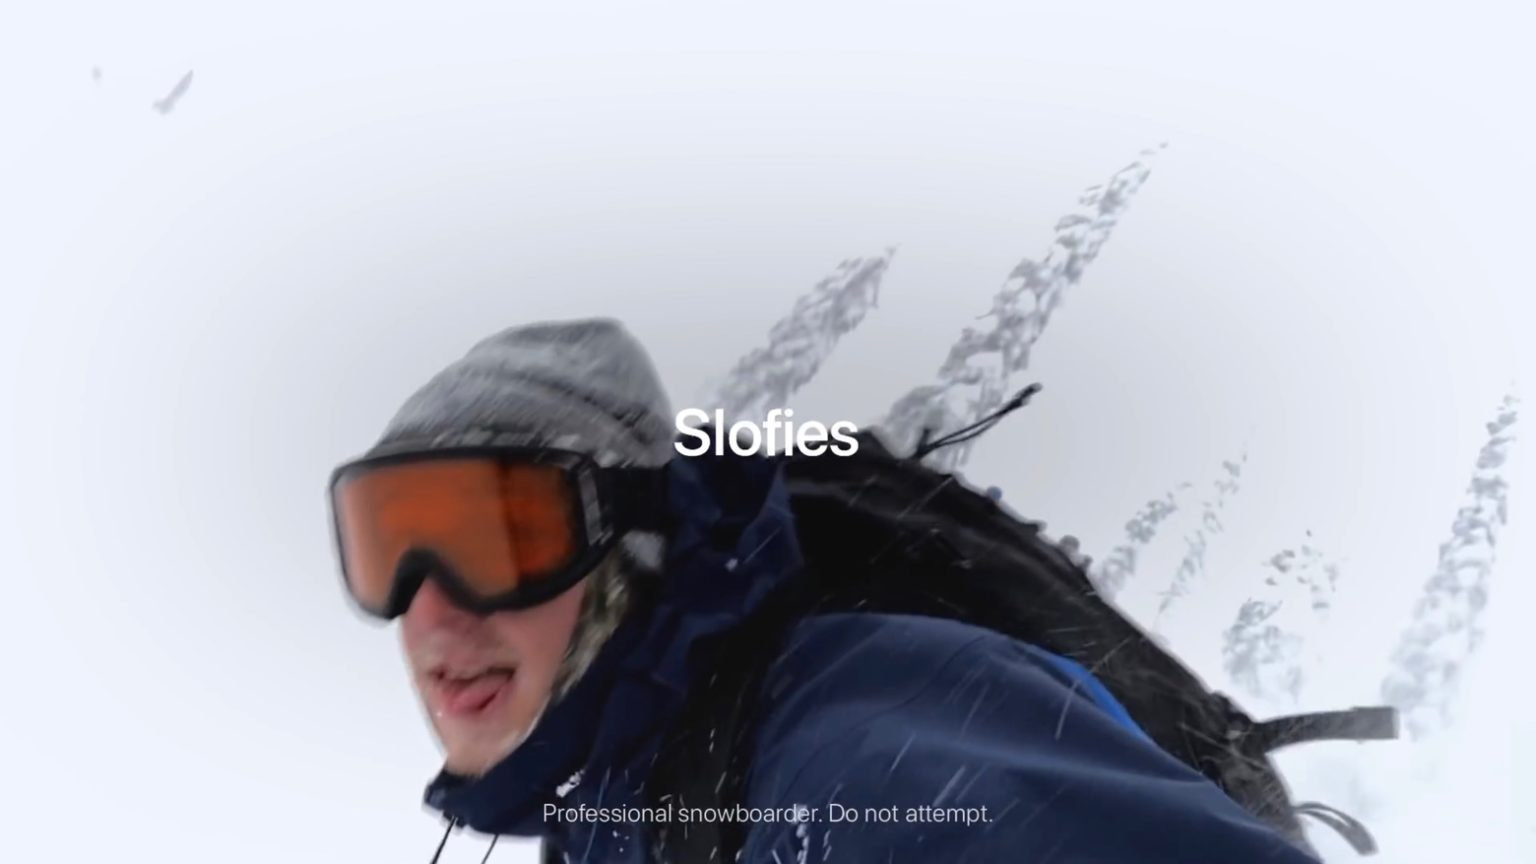 A snowboarder takes a slofie